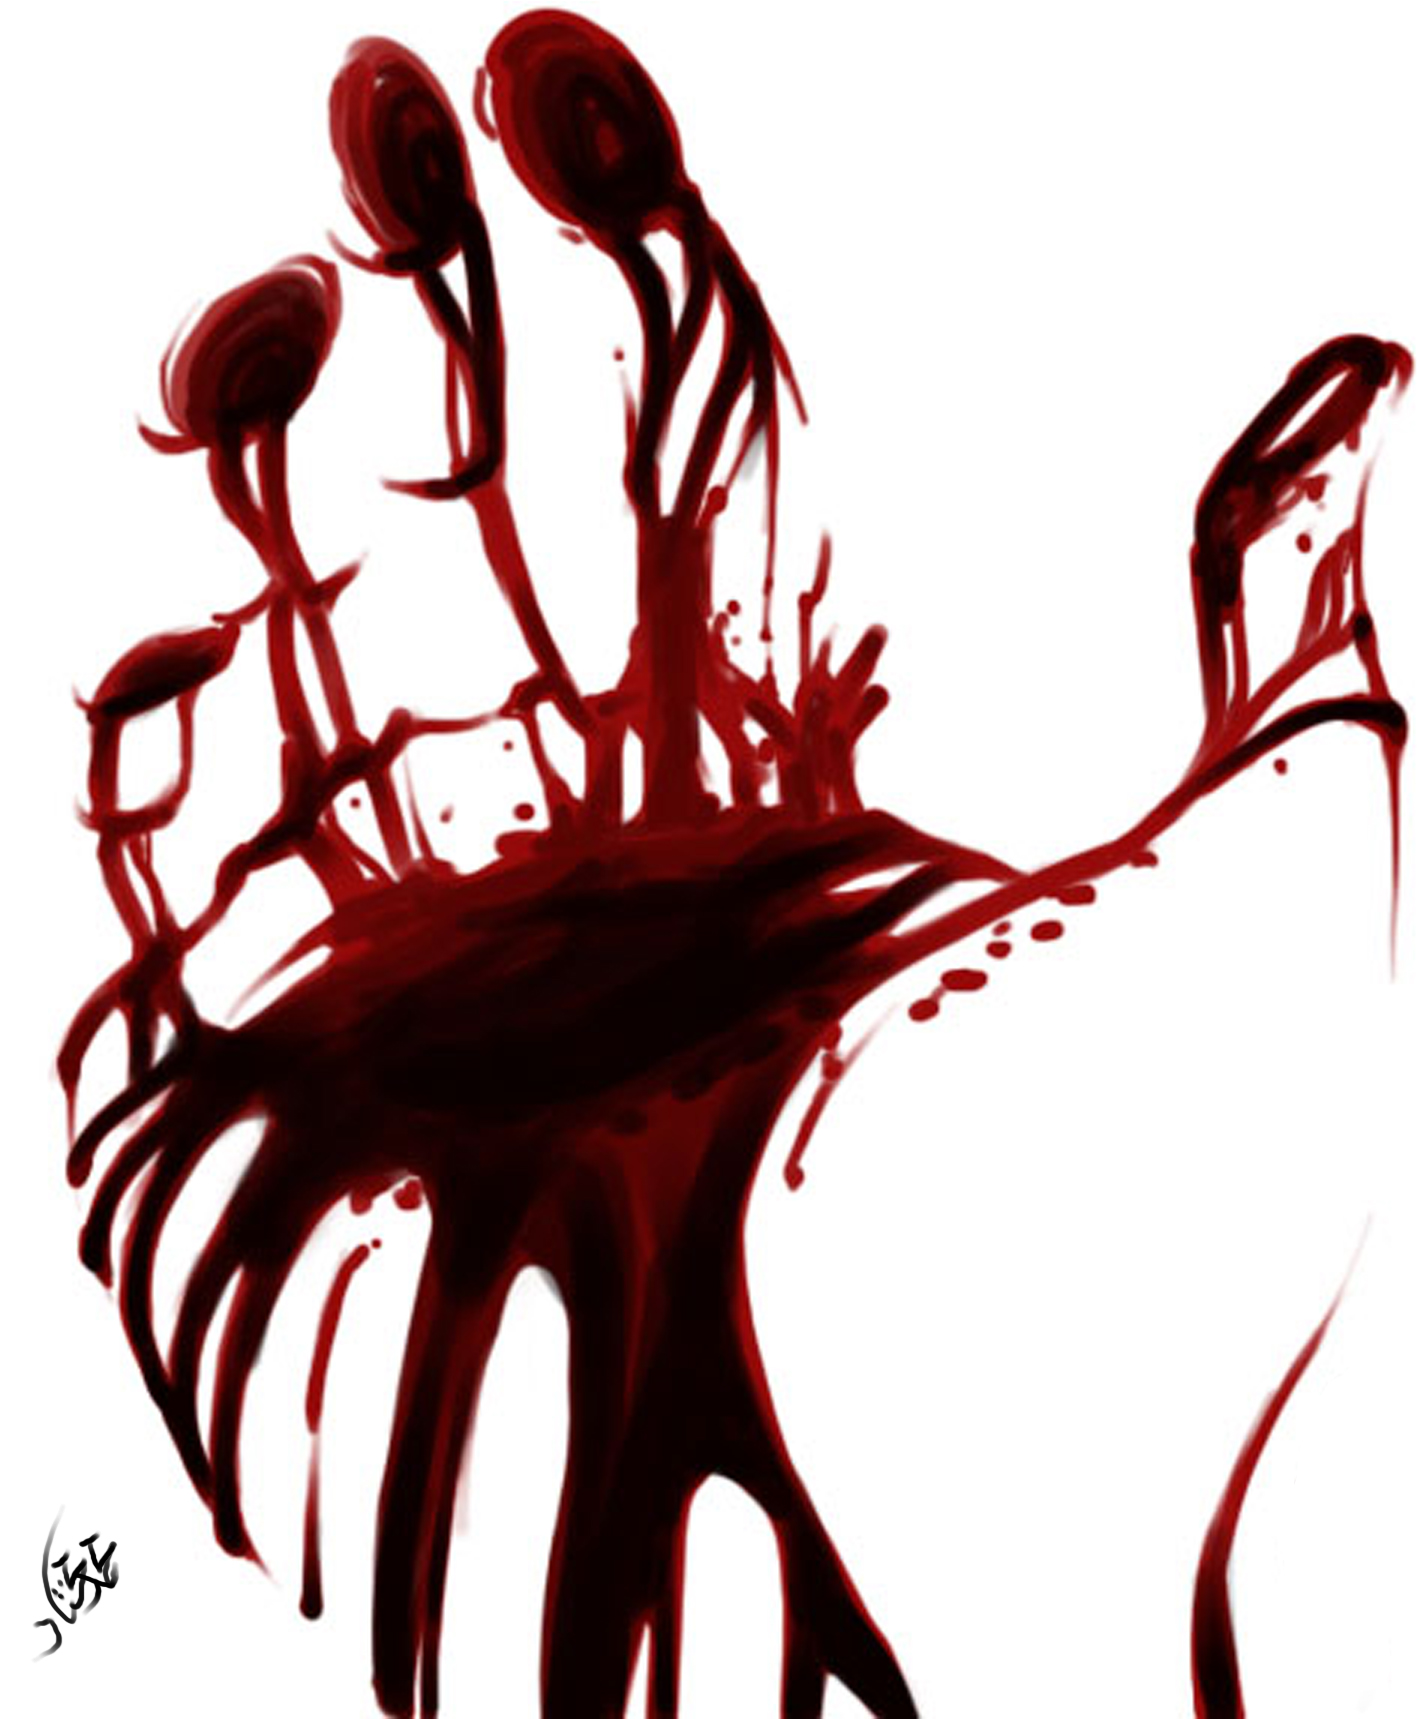 Blood Print on a Hand 2247.8 Kb